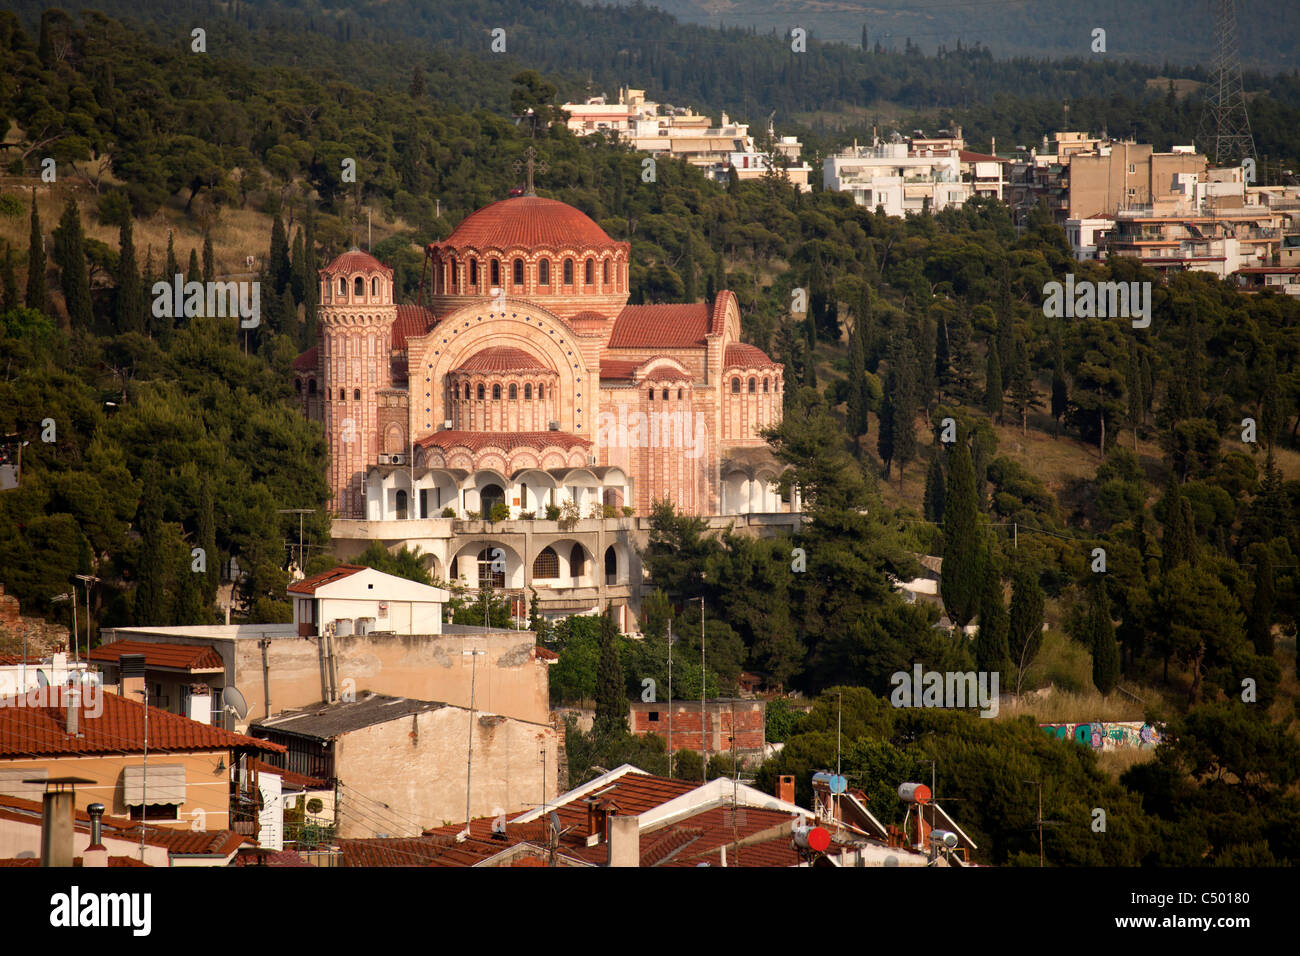 the church Agios Pavlos in Thessaloniki, Macedonia, Greece - Stock Image